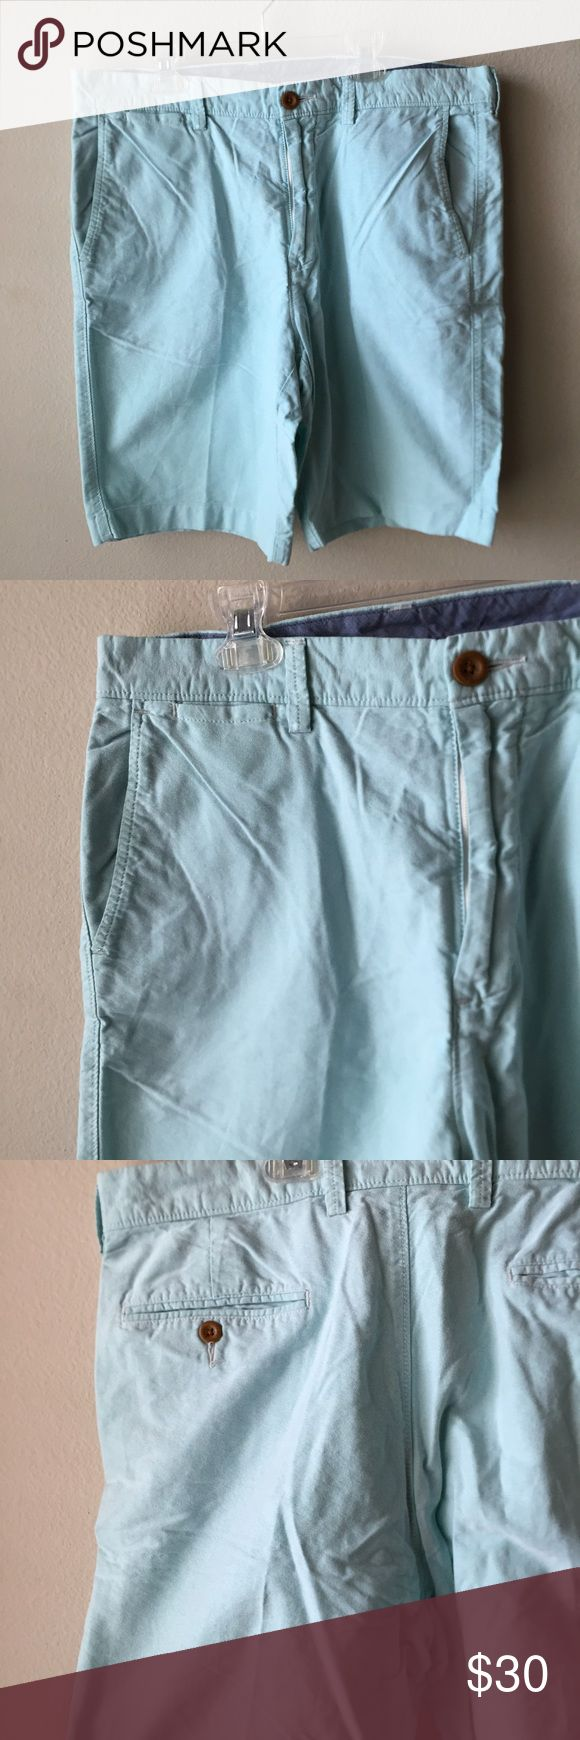 """Mens J. Crew Club Short Such a nice pair of shorts for the summer that will match with almost anything in his closet!             ⚜100% Cotton ⚜Measure approx 20"""" L ⚜Size 34W ⚜Color: Light Blue J. Crew Shorts"""